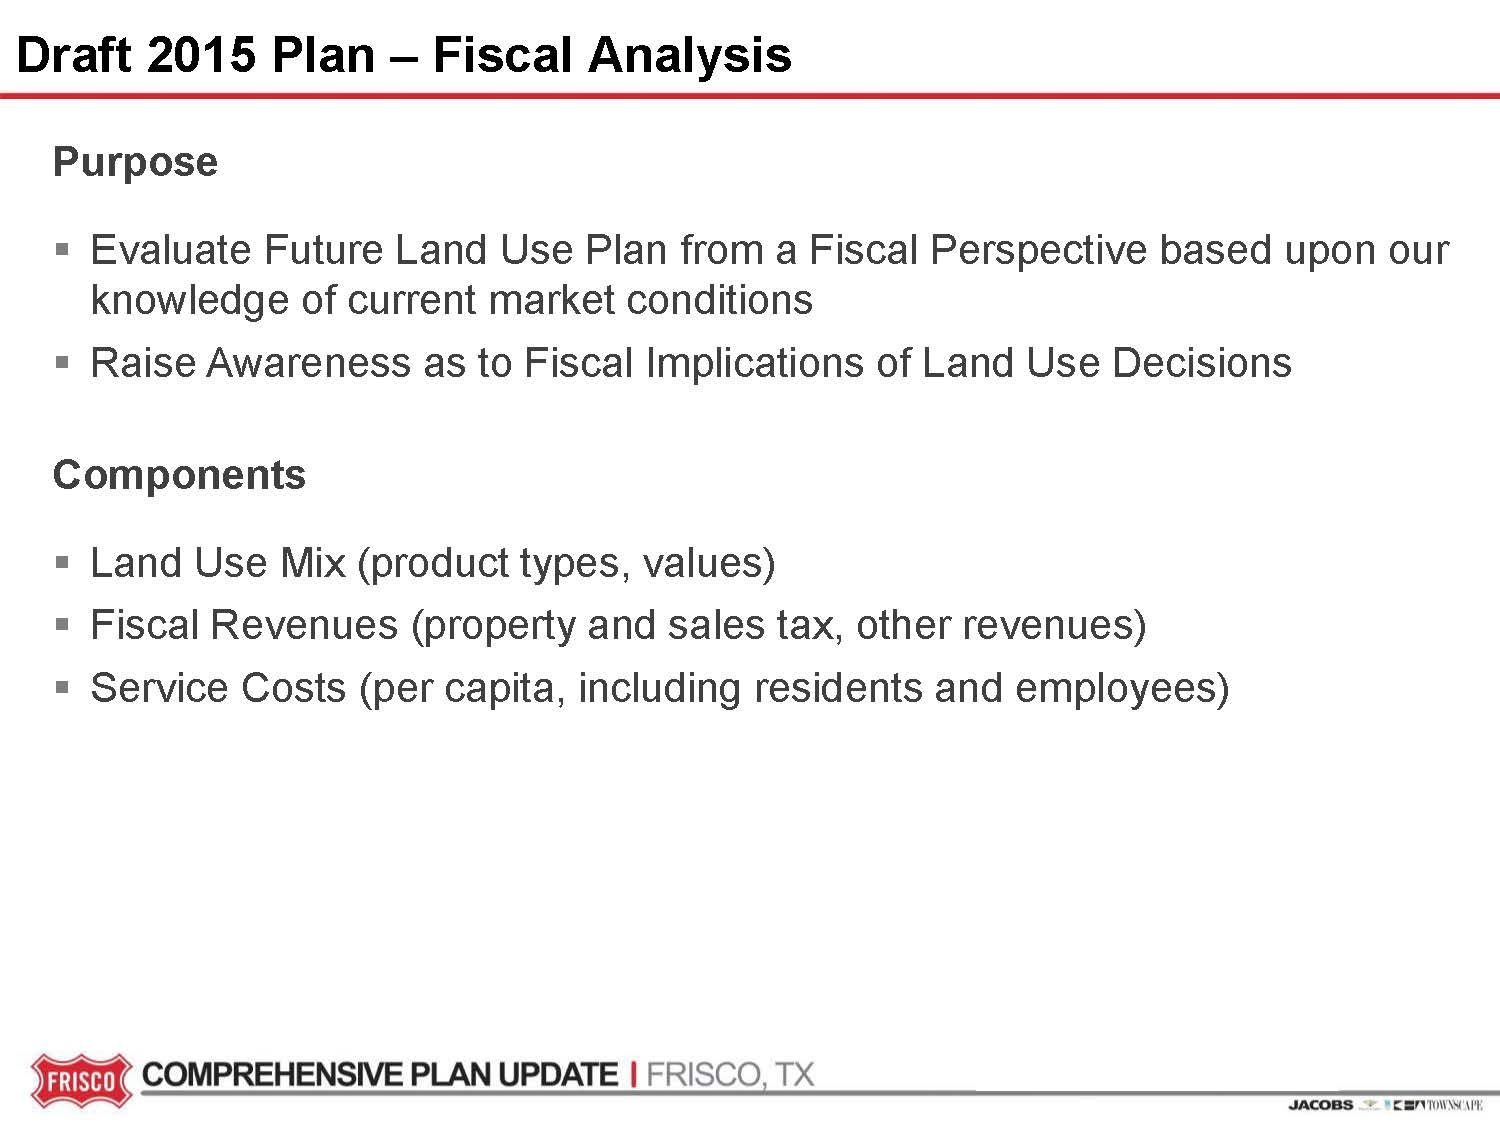 Review the draft 2015 Comprehensive Plan